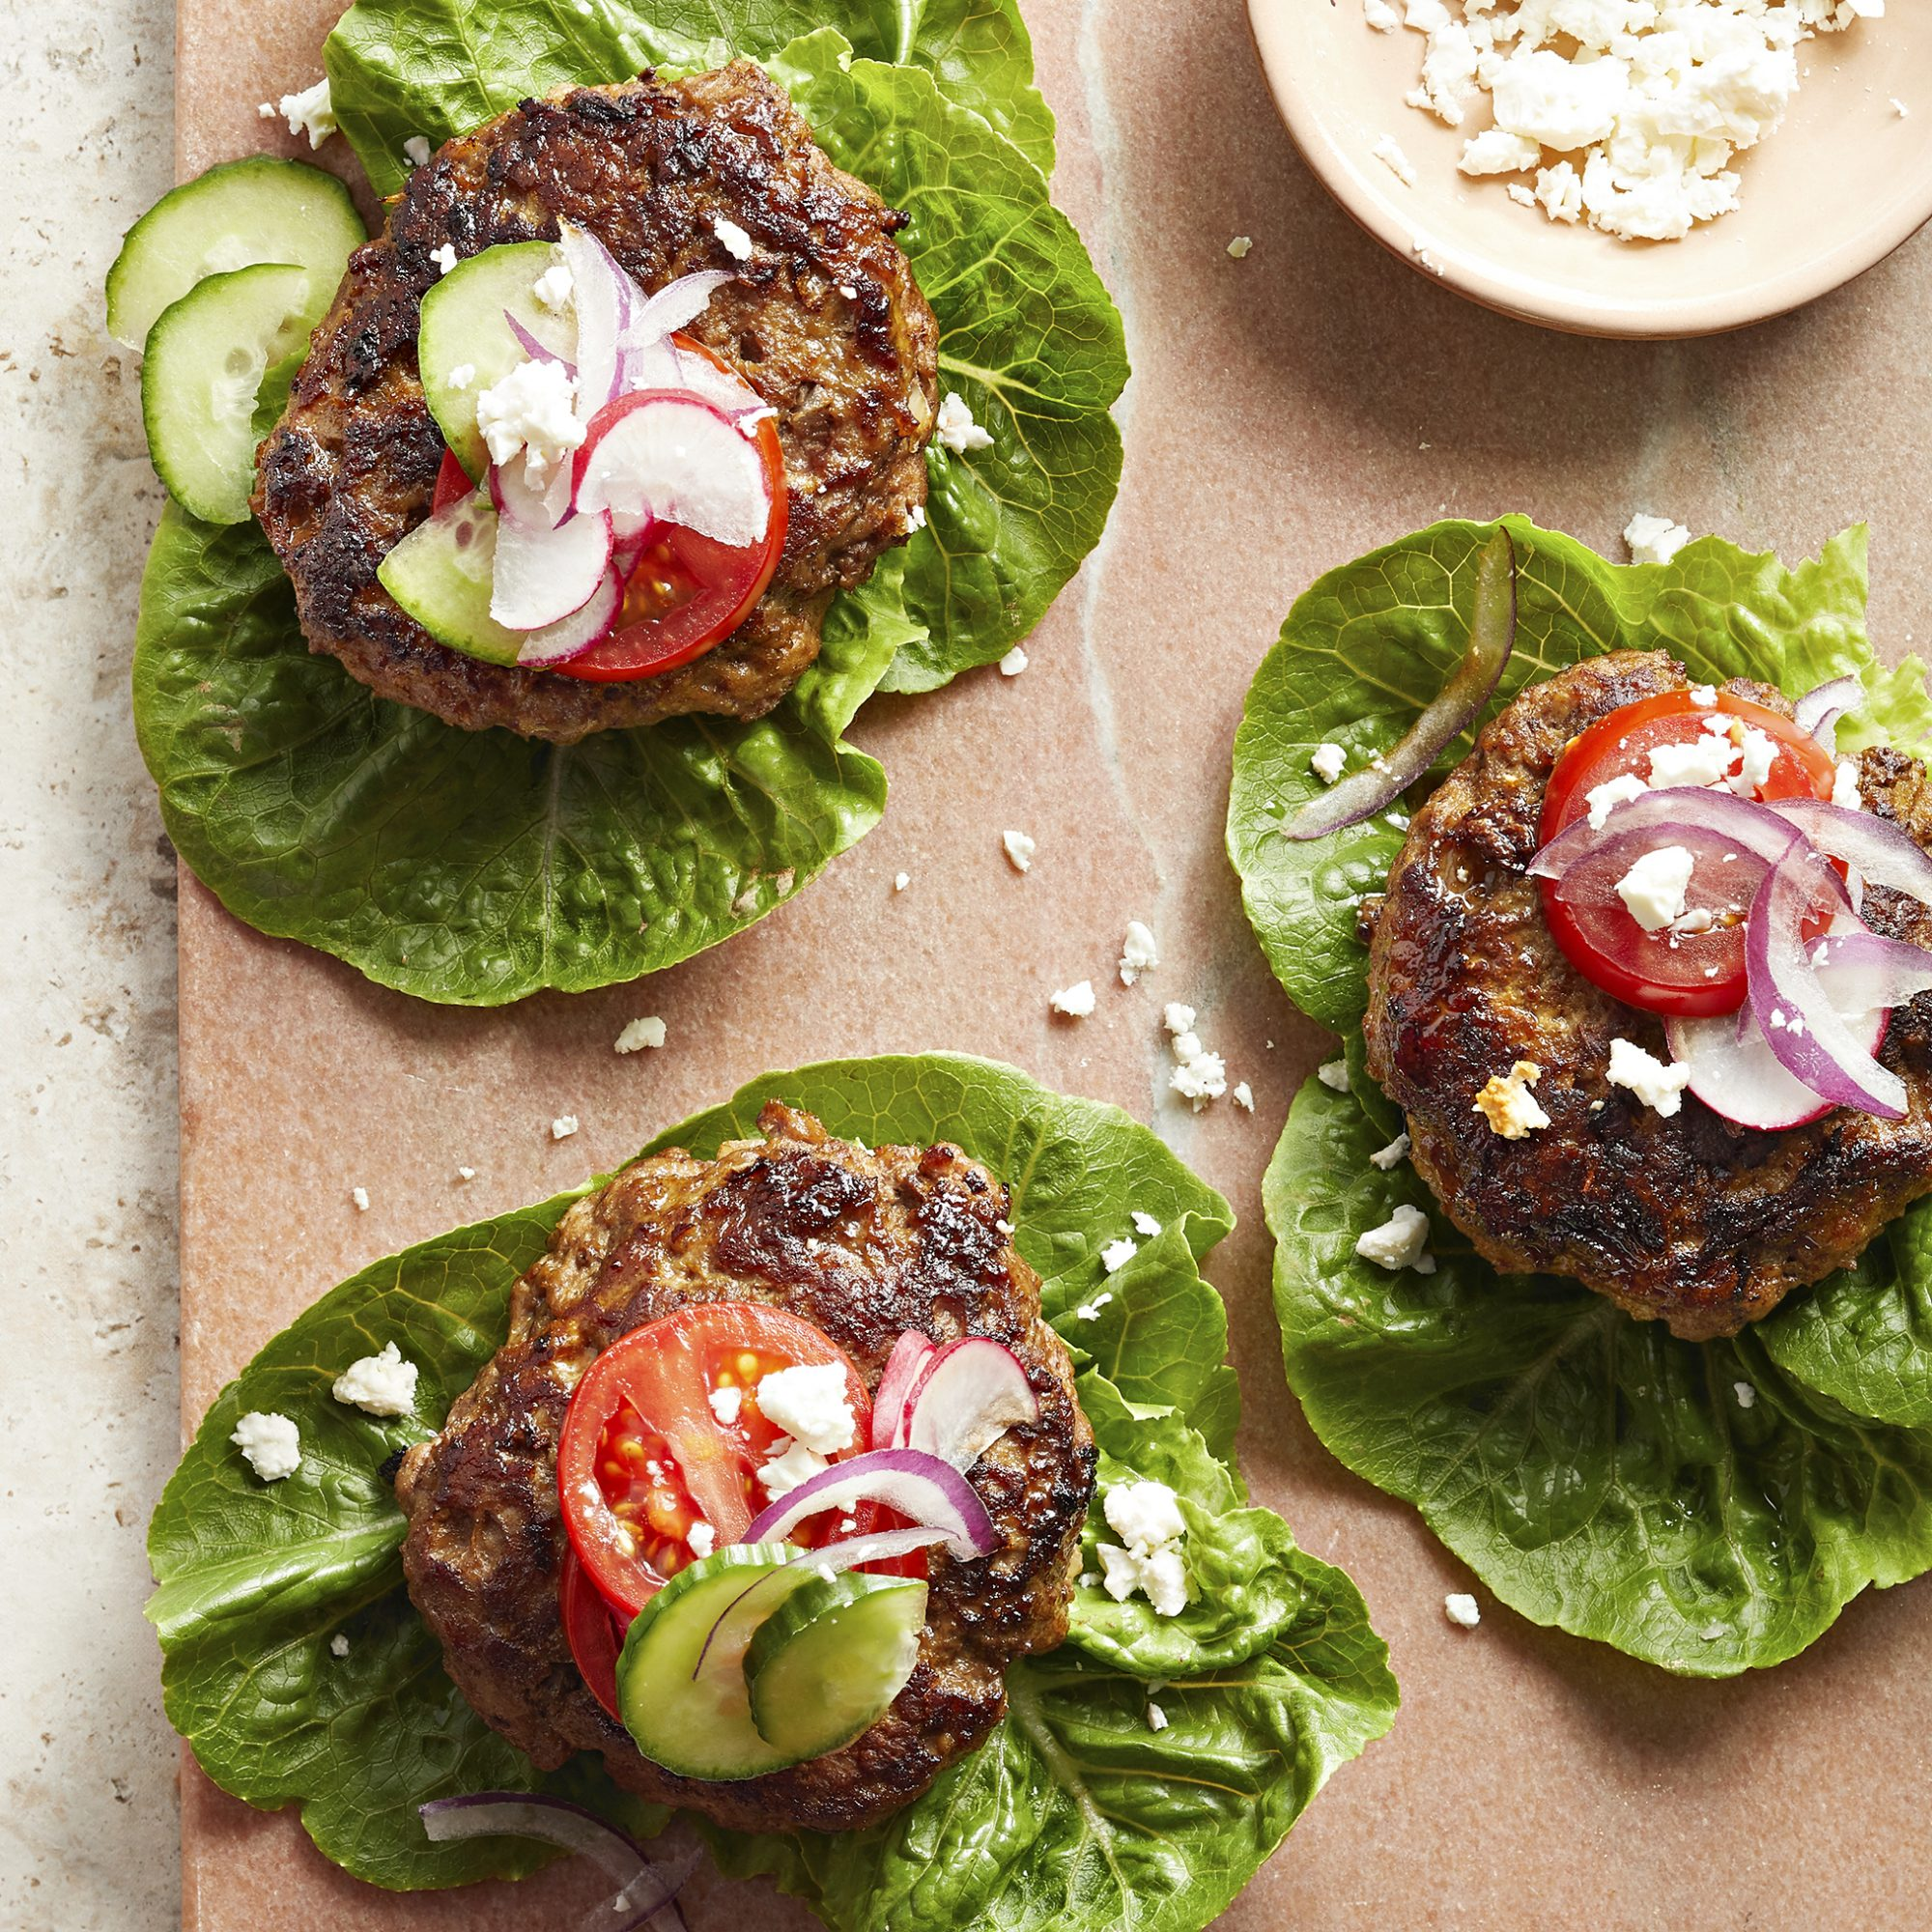 Three low carb lamb burgers-lamb burger patties served on top of leaf lettuce and served with red onion, tomato, pickles and feta cheese